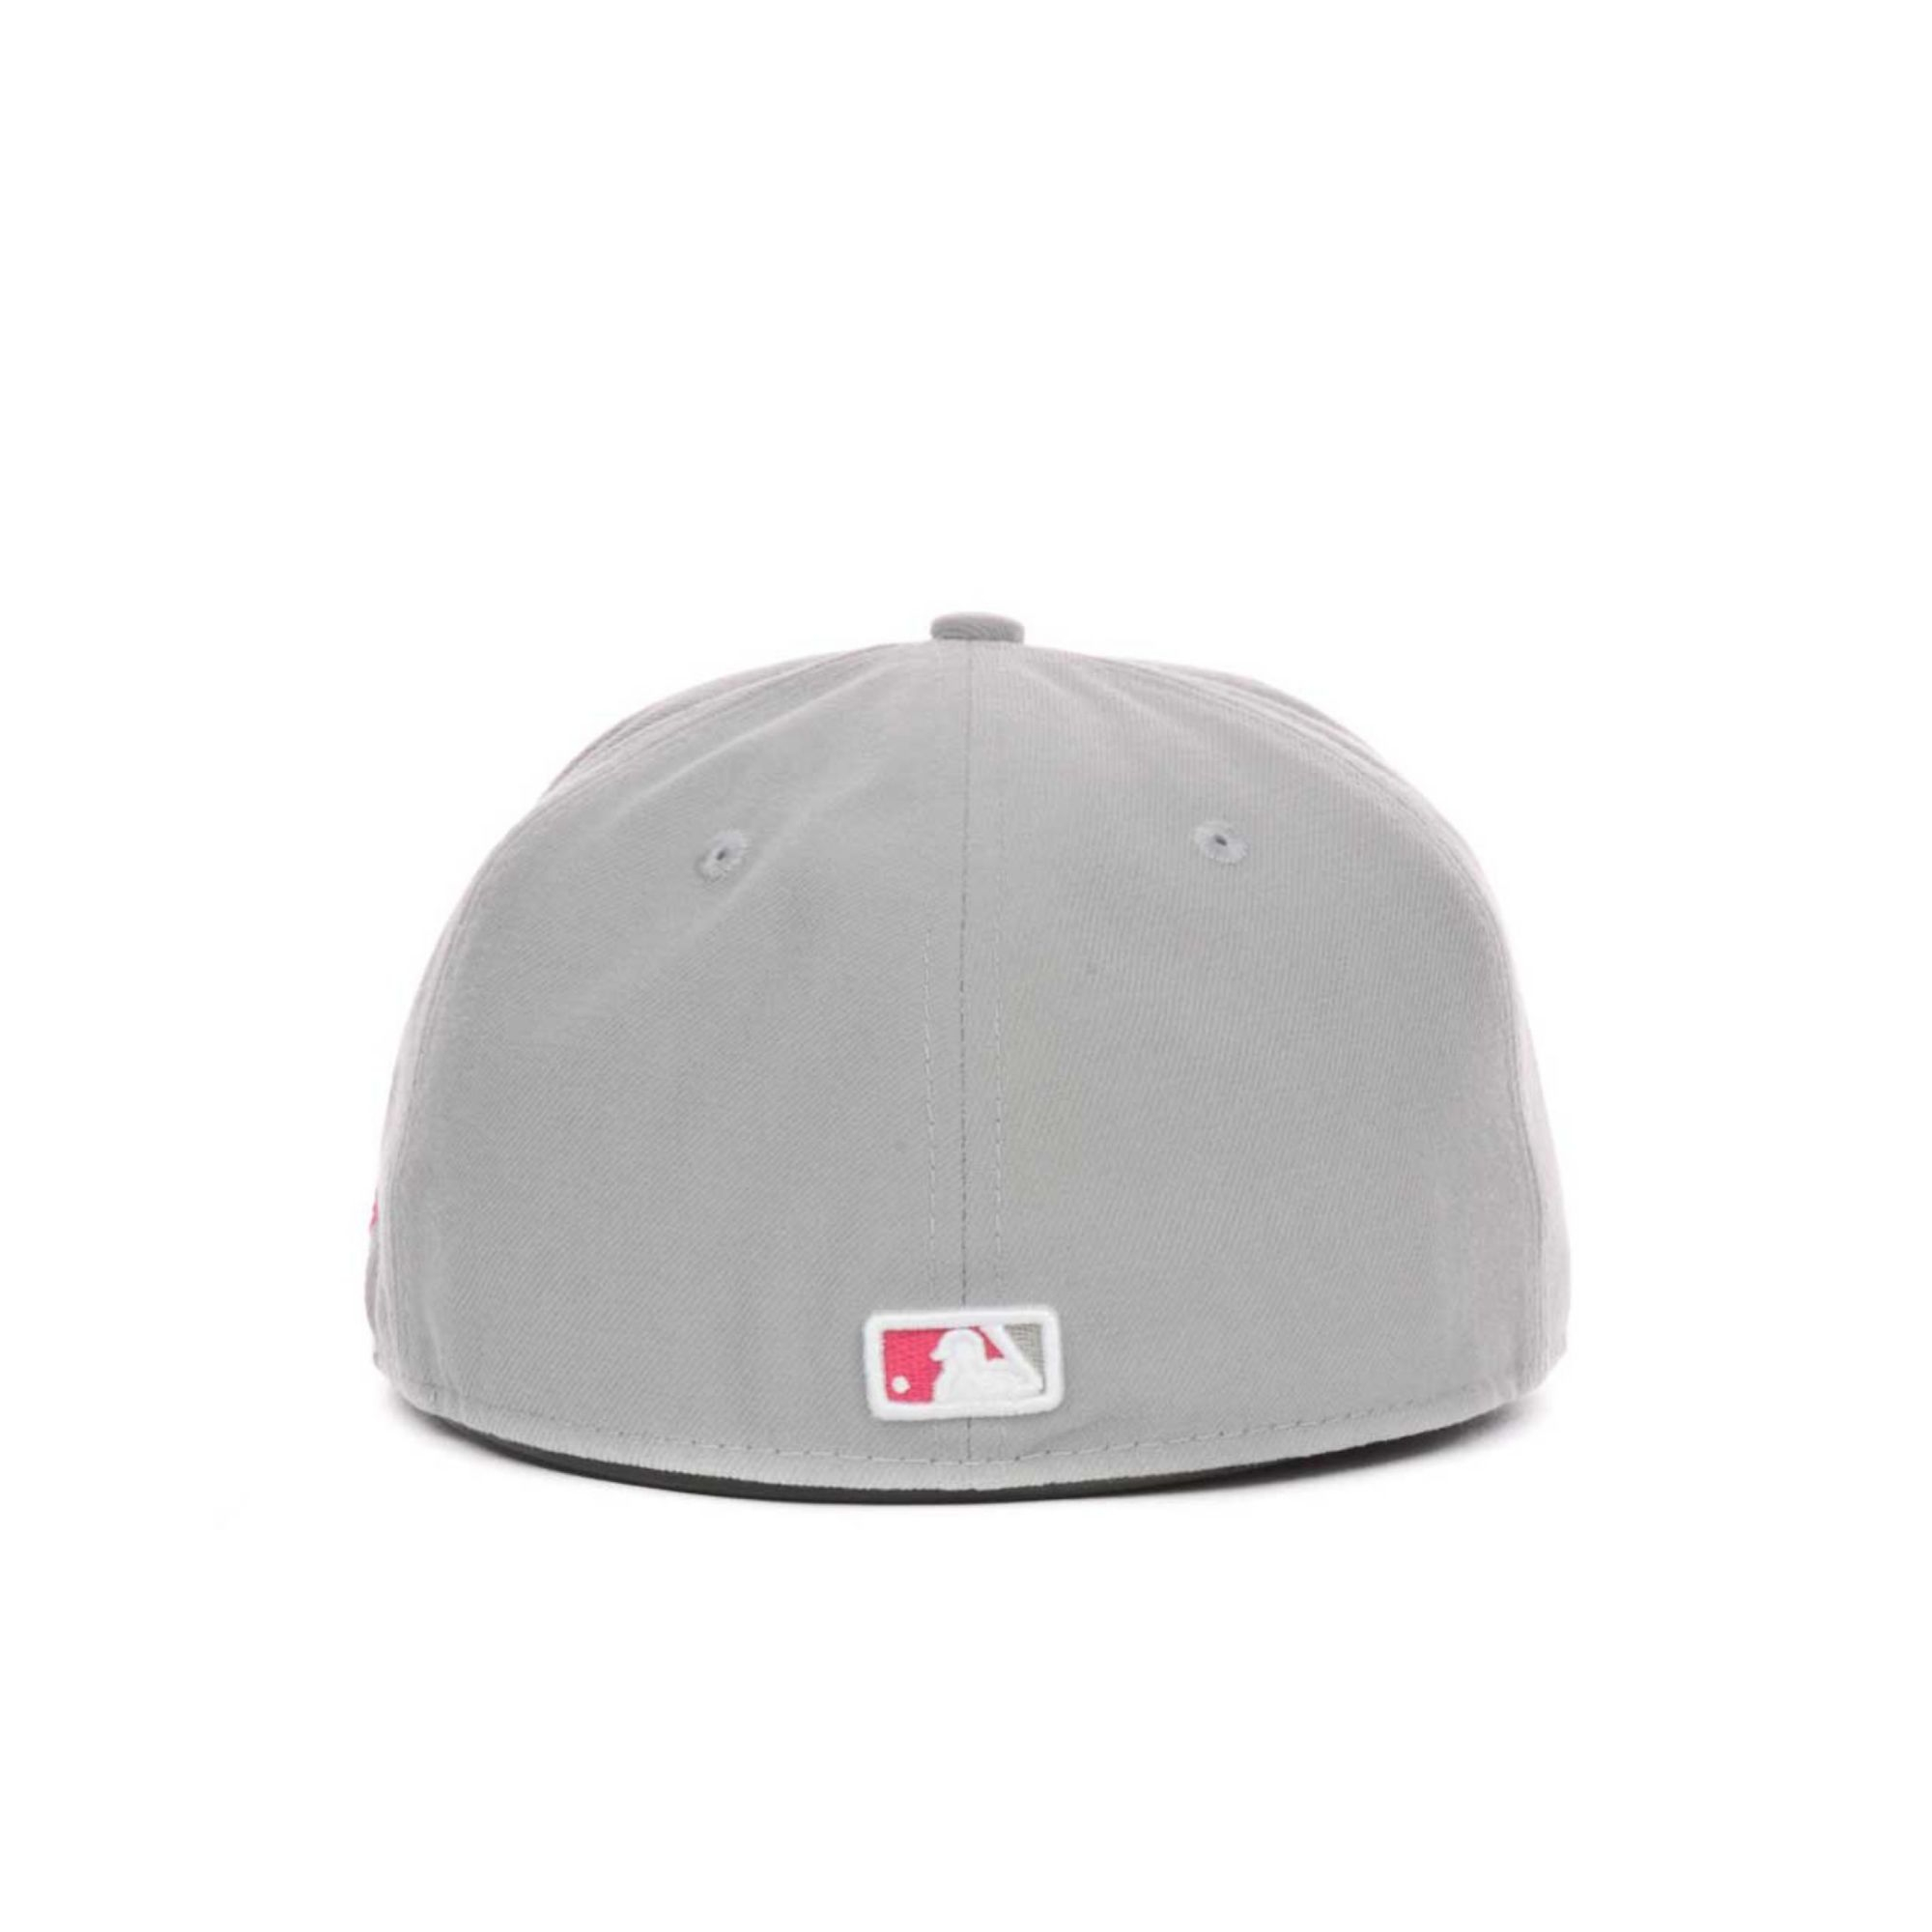 8733f570bee3a3 ... wholesale discount lyst ktz new york mets mlb 2t custom 59fifty cap in  gray for men